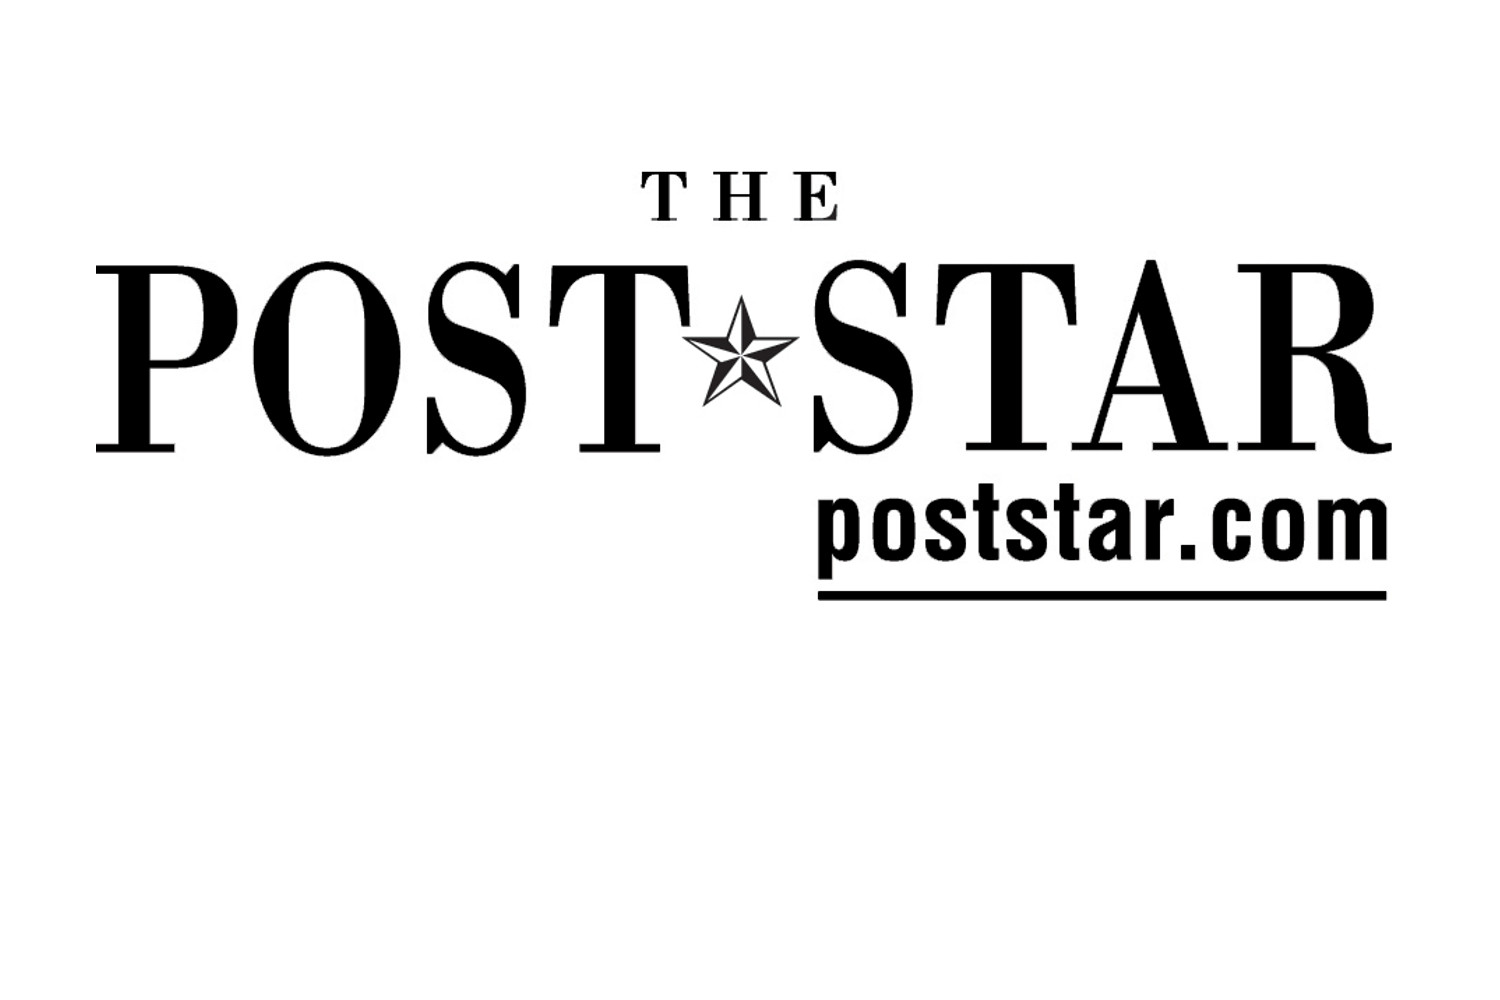 the post star logo as feature image for republished original article on GuardianMPS